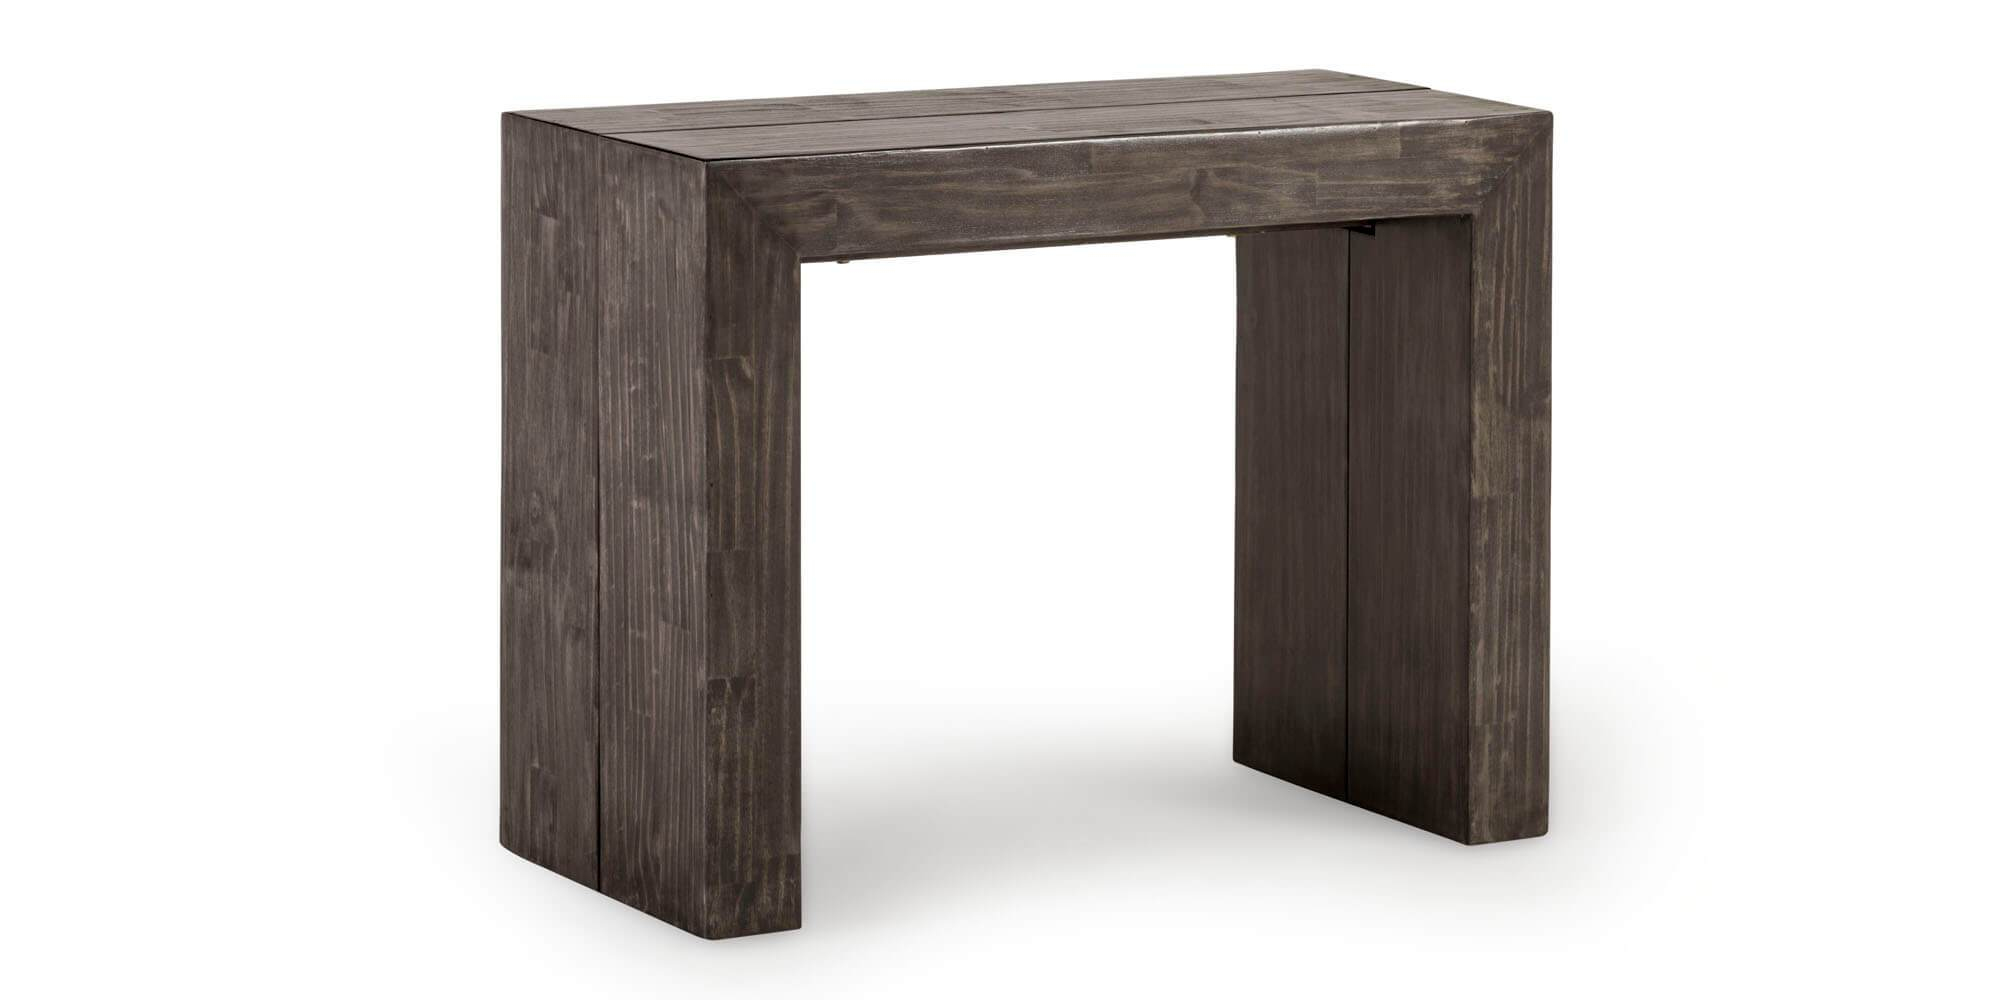 La Table Transformer + Bouleau gris